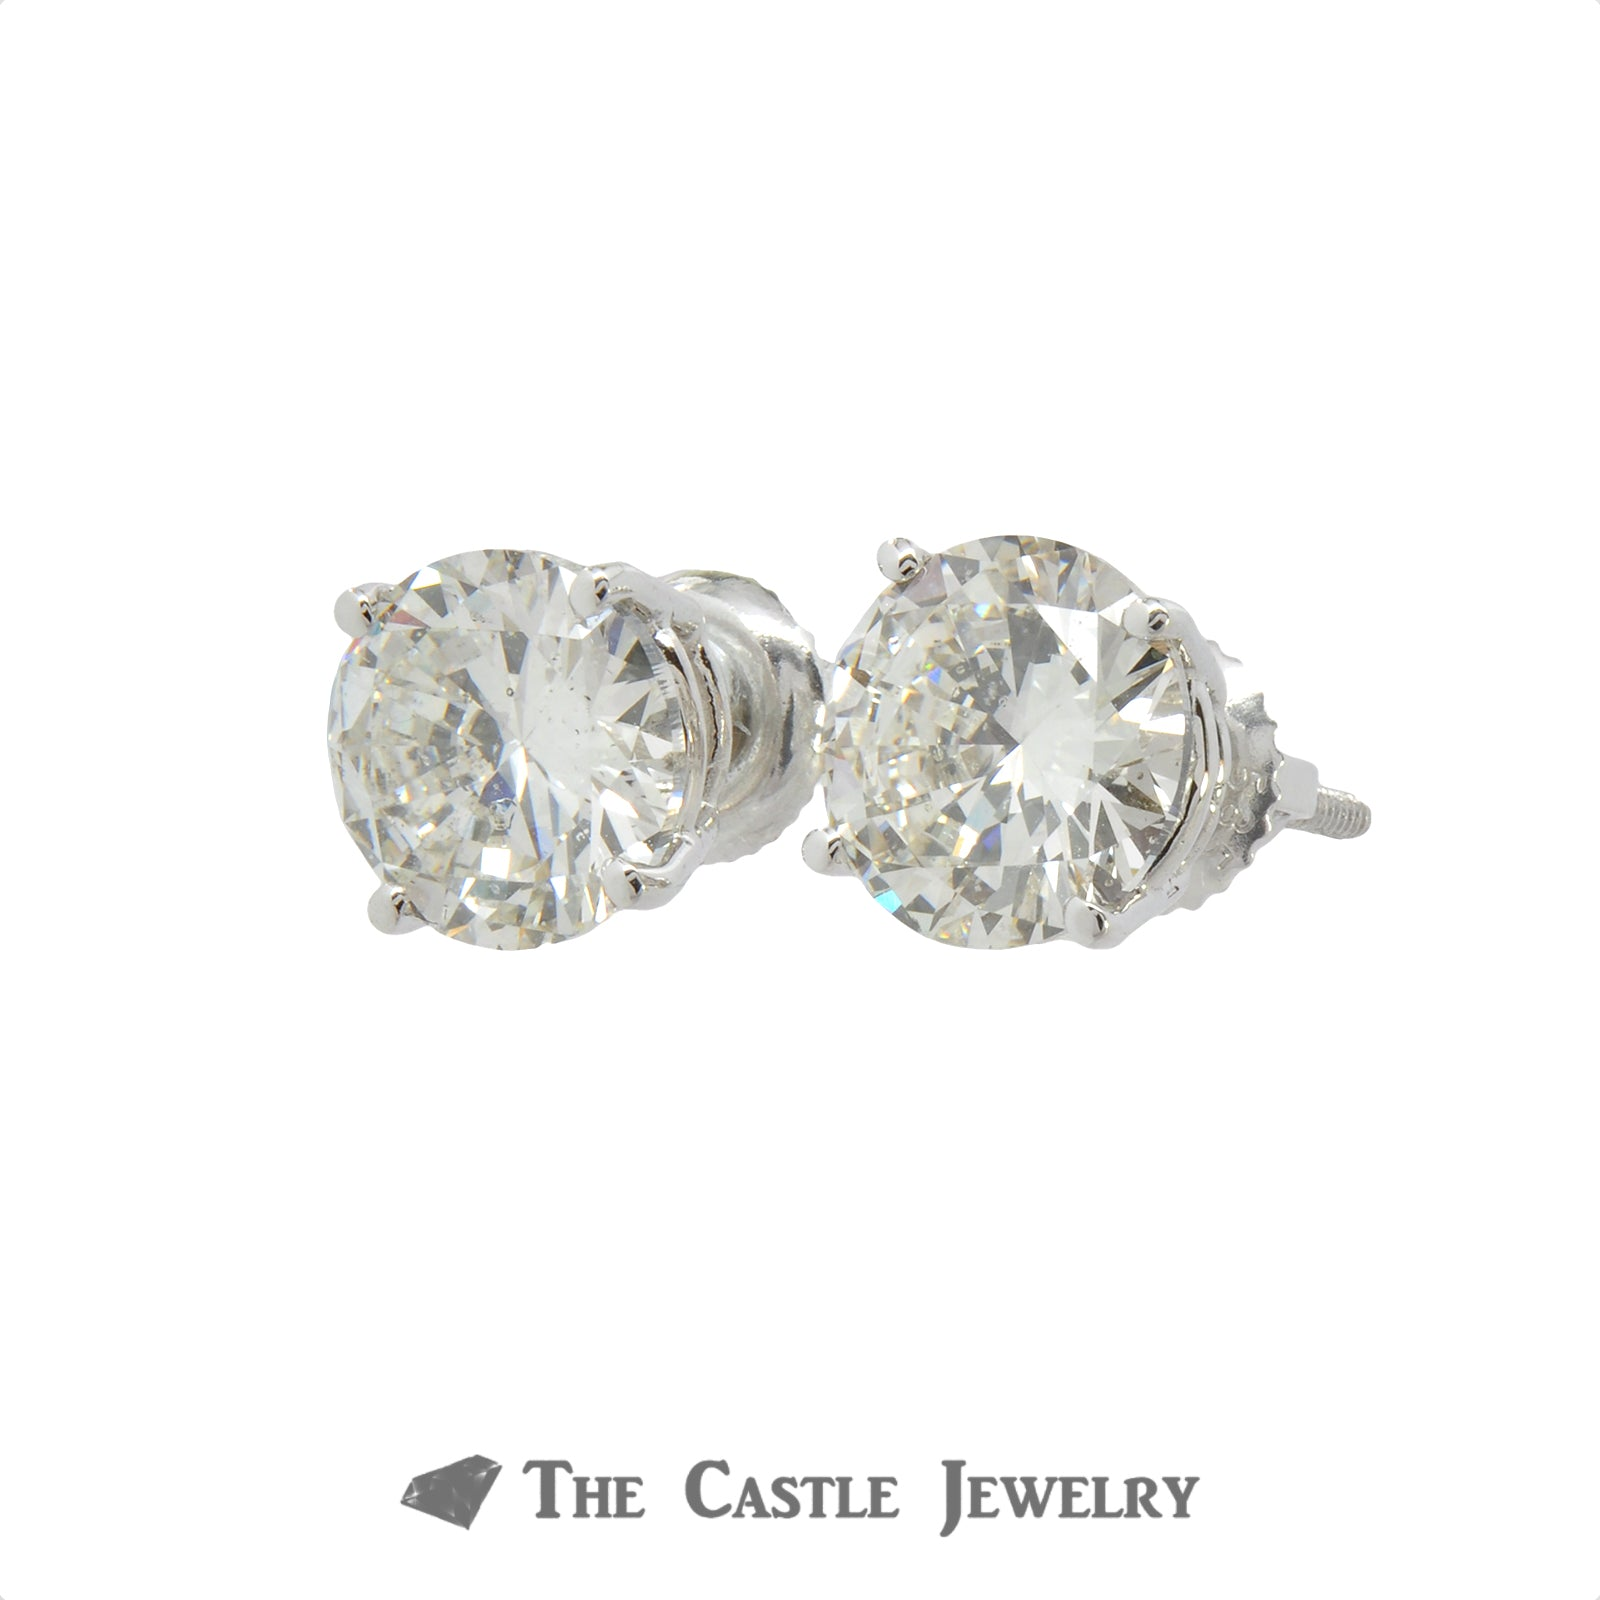 Lab Grown Round Brilliant Cut Diamond Stud Earrings 4.02 cttw In 14KT White Gold-1